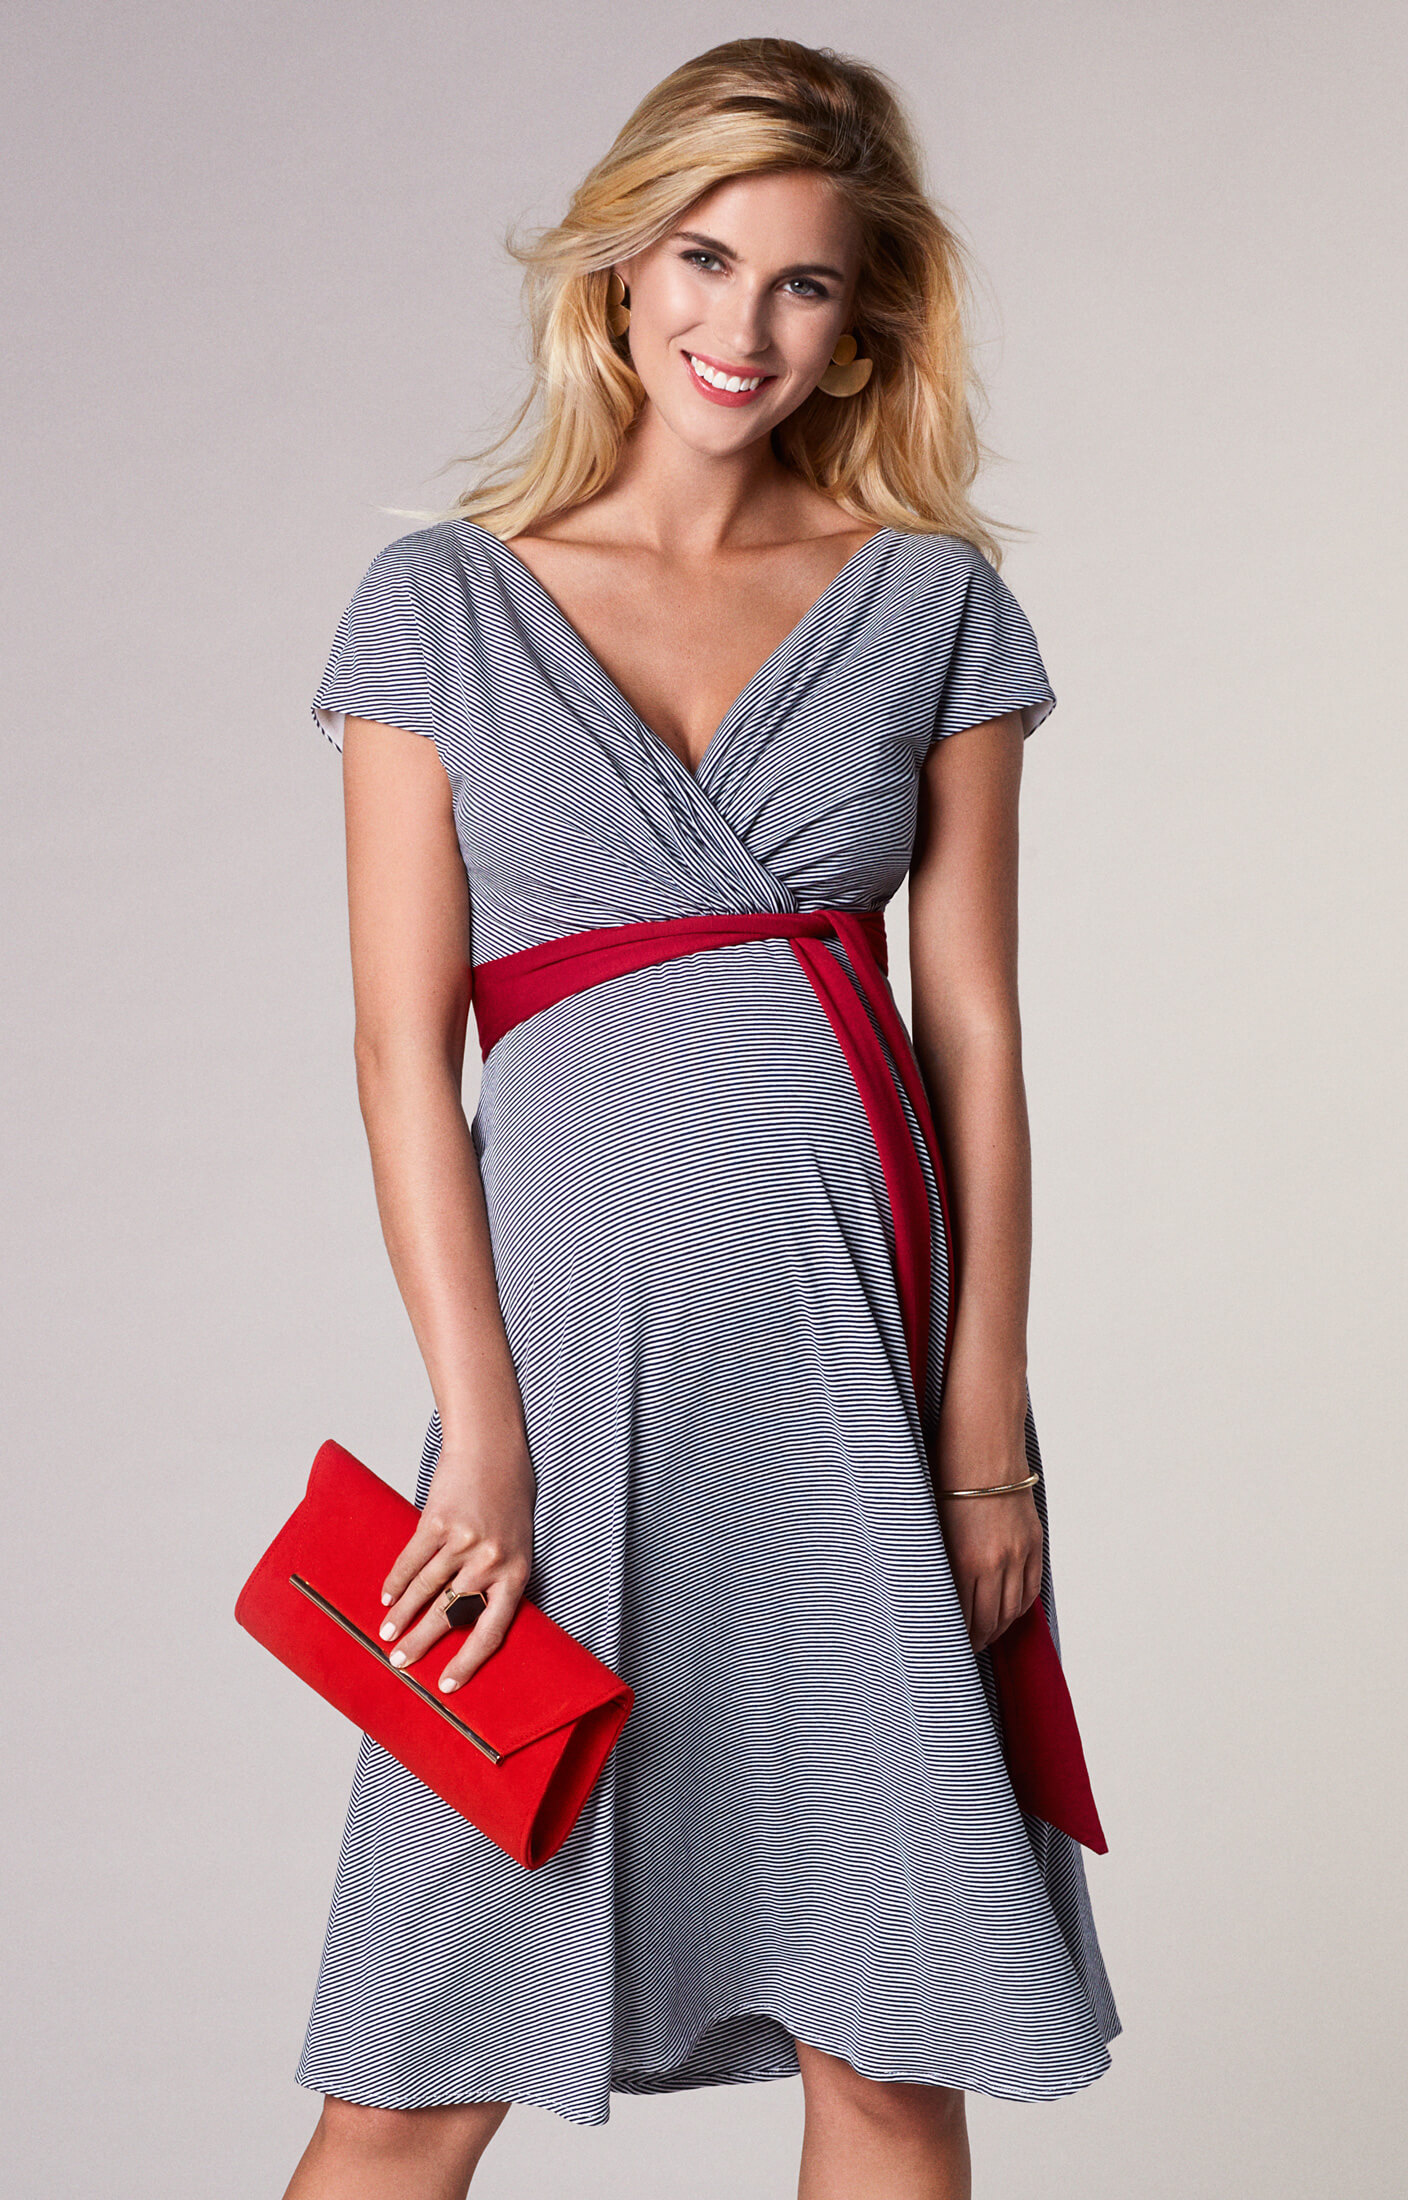 Free Shipping Every Day on our selection of cute and comfortable maternity clothes. Motherhood offers countless sizes of maternity dresses, nursing bras, maternity jeans and pants and a wide selection of cheap maternity clothes. Motherhood Maternity Canada.